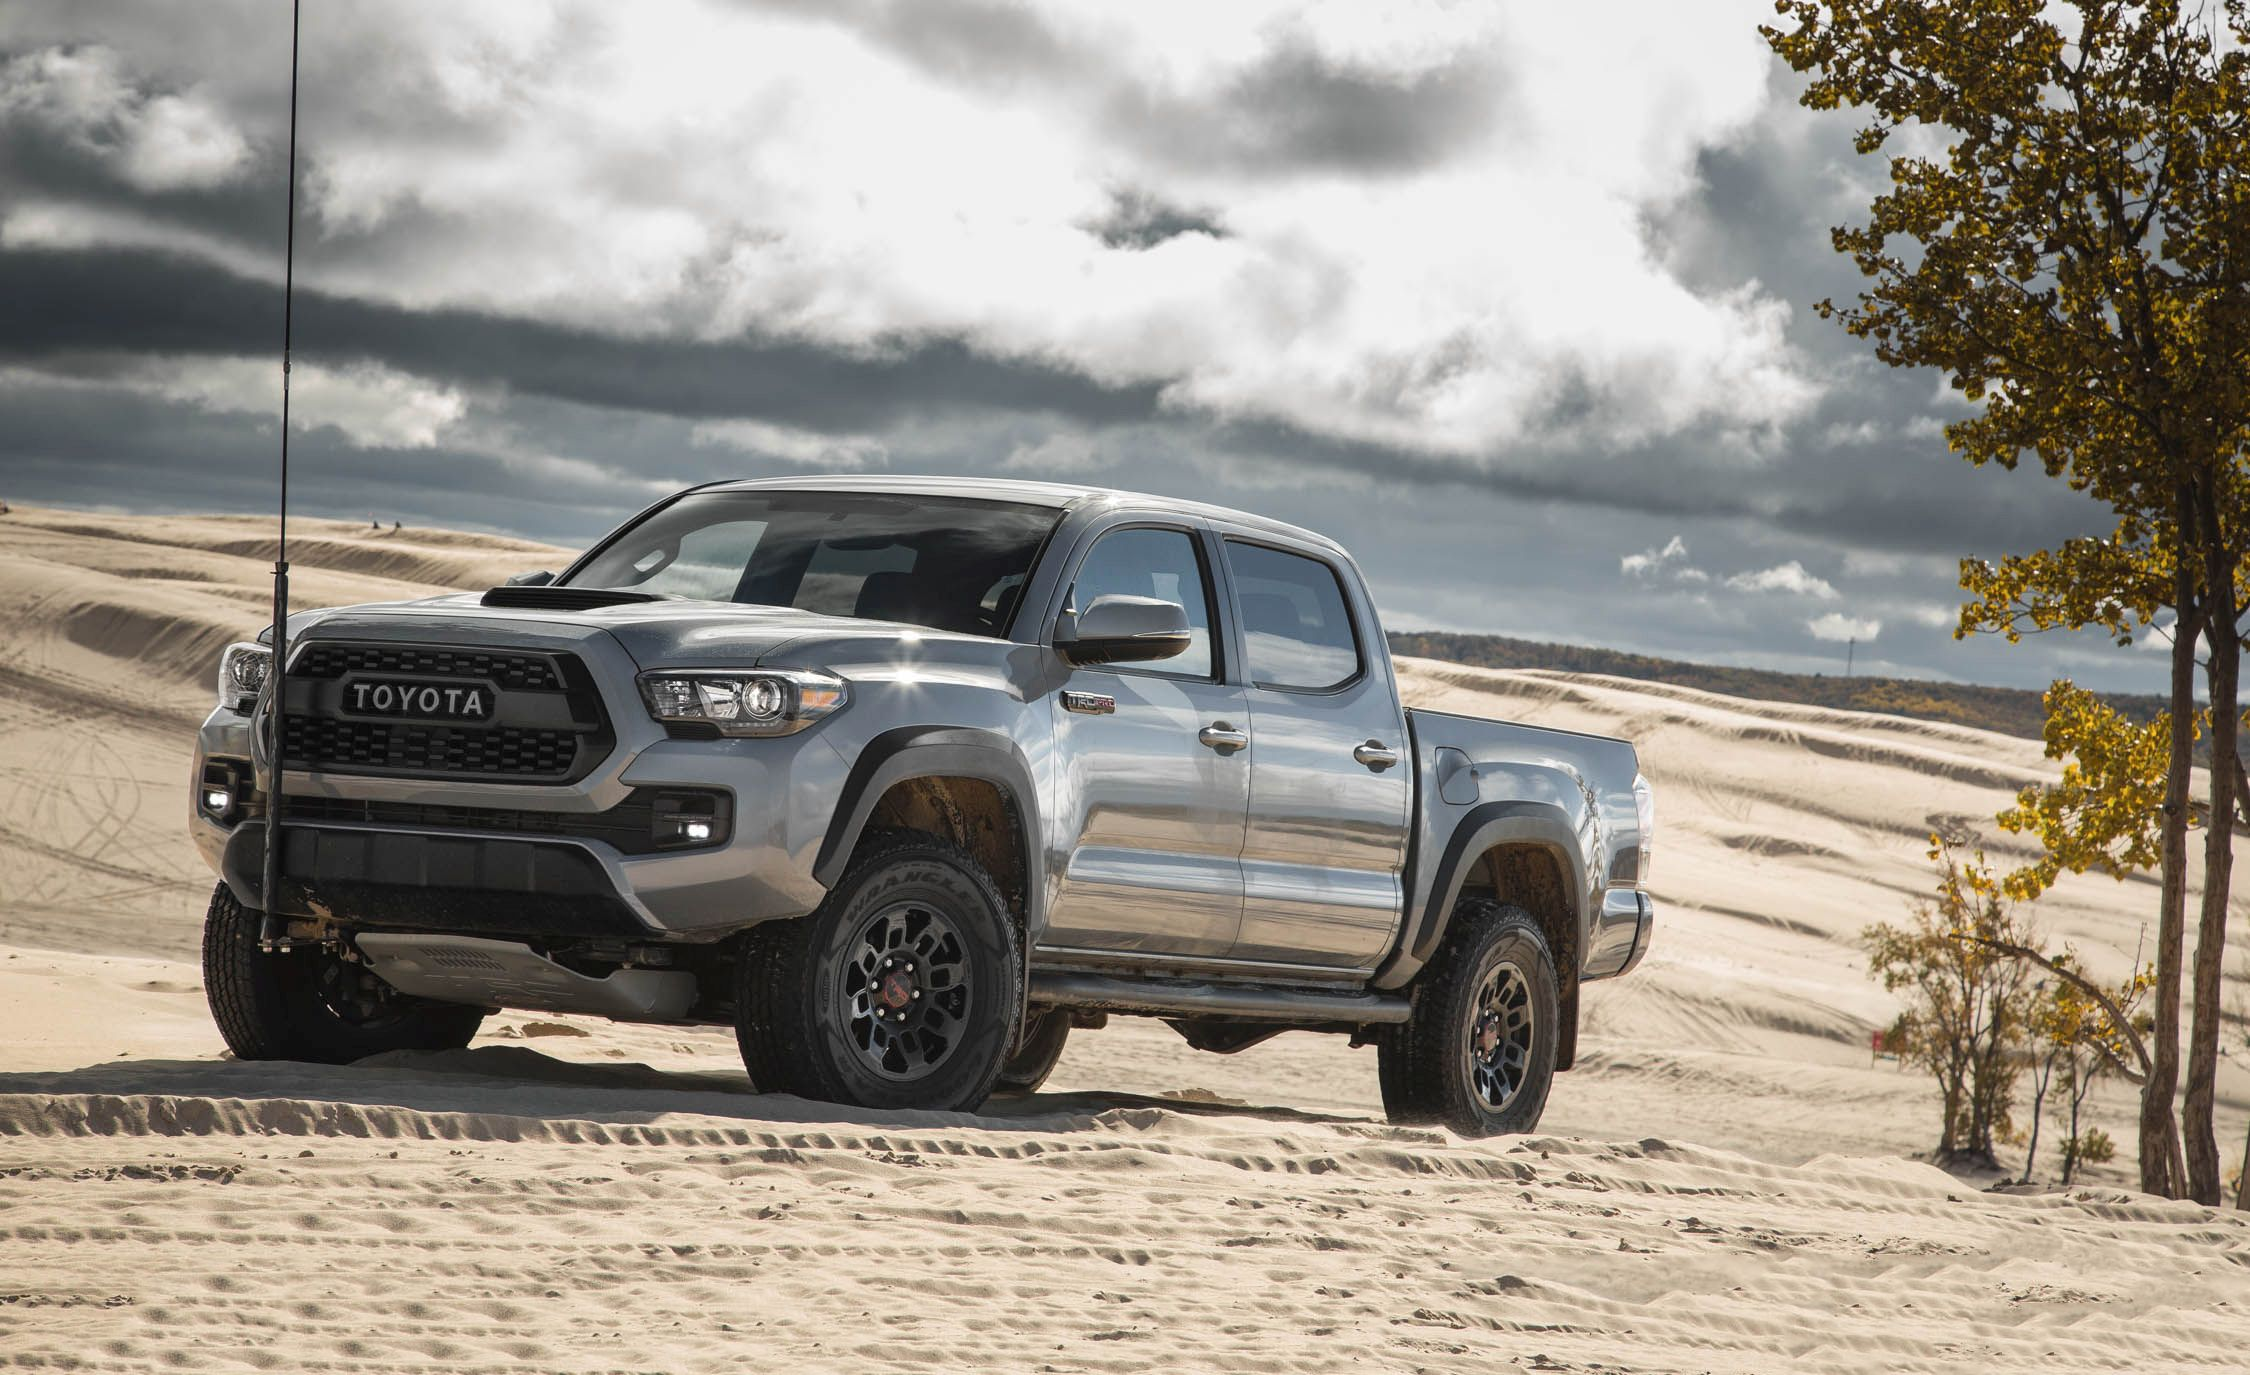 2017 toyota tacoma pictures photo gallery car and driver. Black Bedroom Furniture Sets. Home Design Ideas